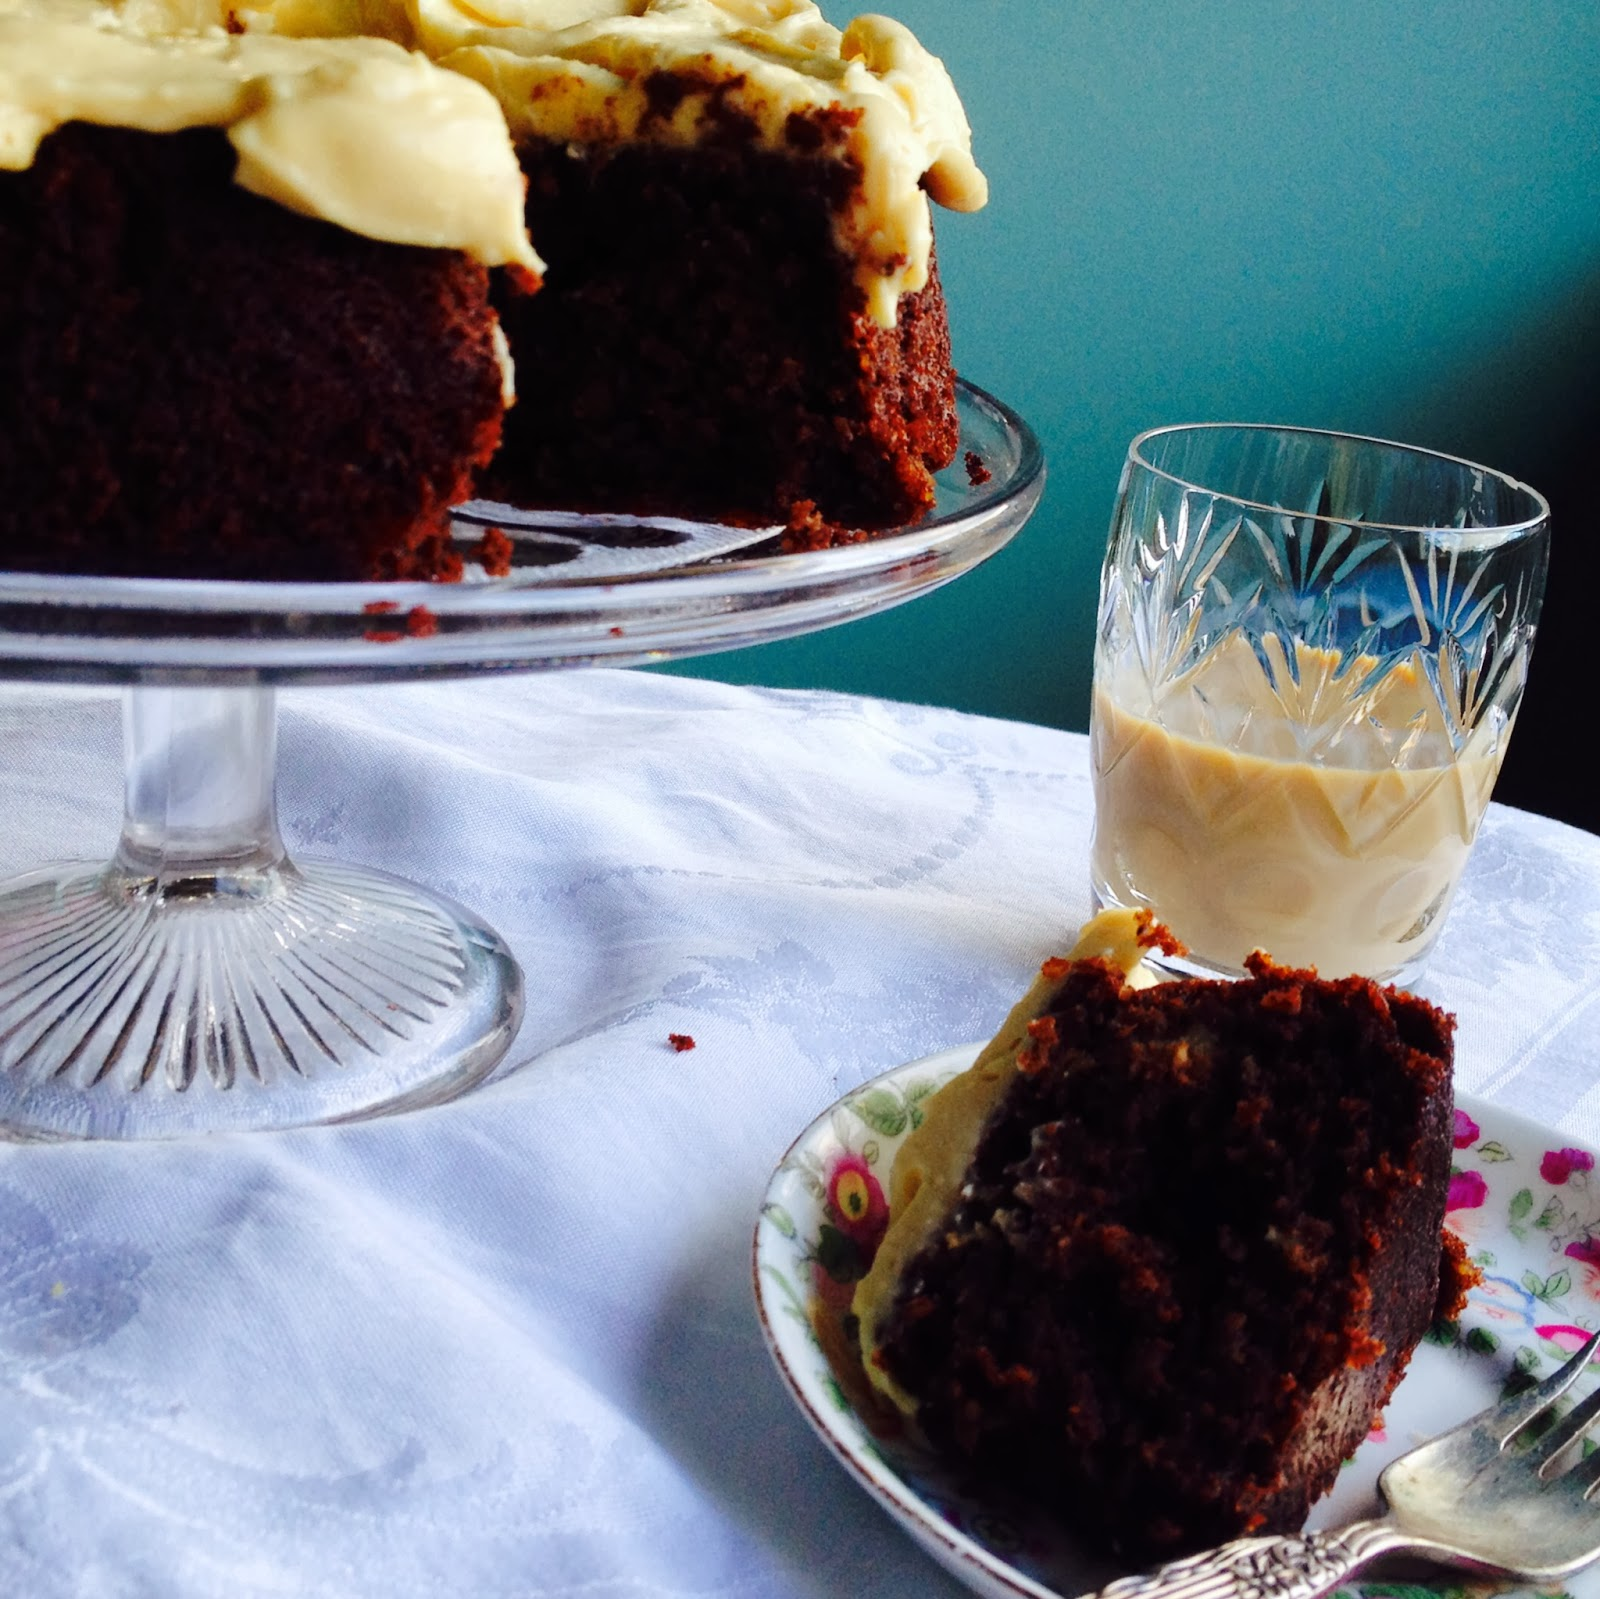 St Patrick's Day Chocolate Potato Cake With Irish Cream Frosting - Gluten-Free Photo And Recipe Credit: Lucy Corry/The Kitchenmaid